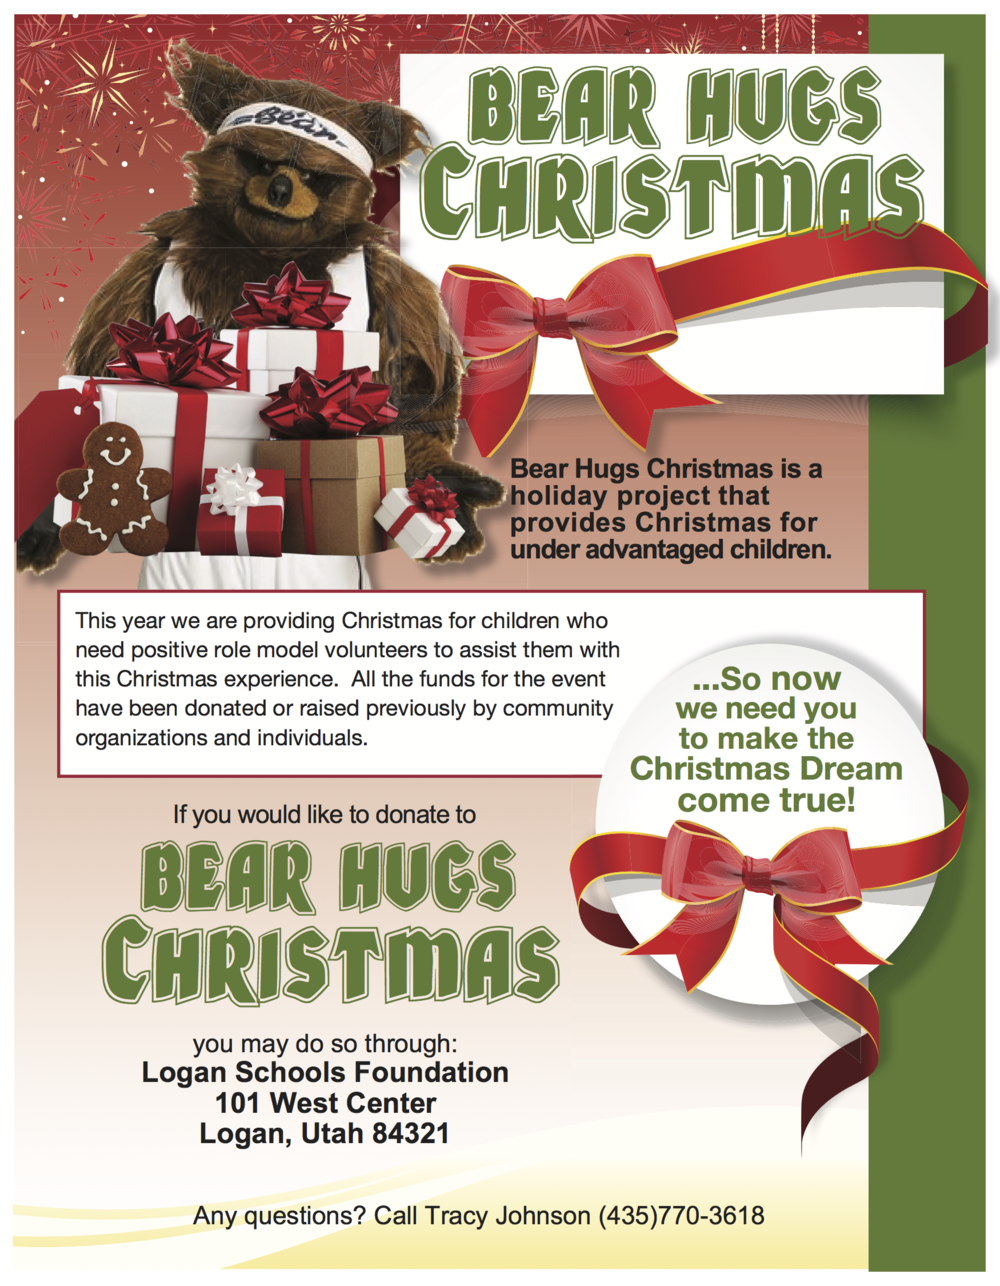 Bear Hugs Christmas is a holiday project to provide Christmas for under advantaged children. This year we are providing Christmas for children who need positive role model volunteers to assist them with this Christmas experience. All the funds for the event have been donated or raised previously by community organizations and individuals. So now we need you to make the Christmas Dream come true!. If you would like to donate to Bear Hugs Christmas, you may do so through Logan Schools Foundation, 101 West Center, Logan, Utah 84321. Questions? Call Tracy Johnson (435)770-3618.